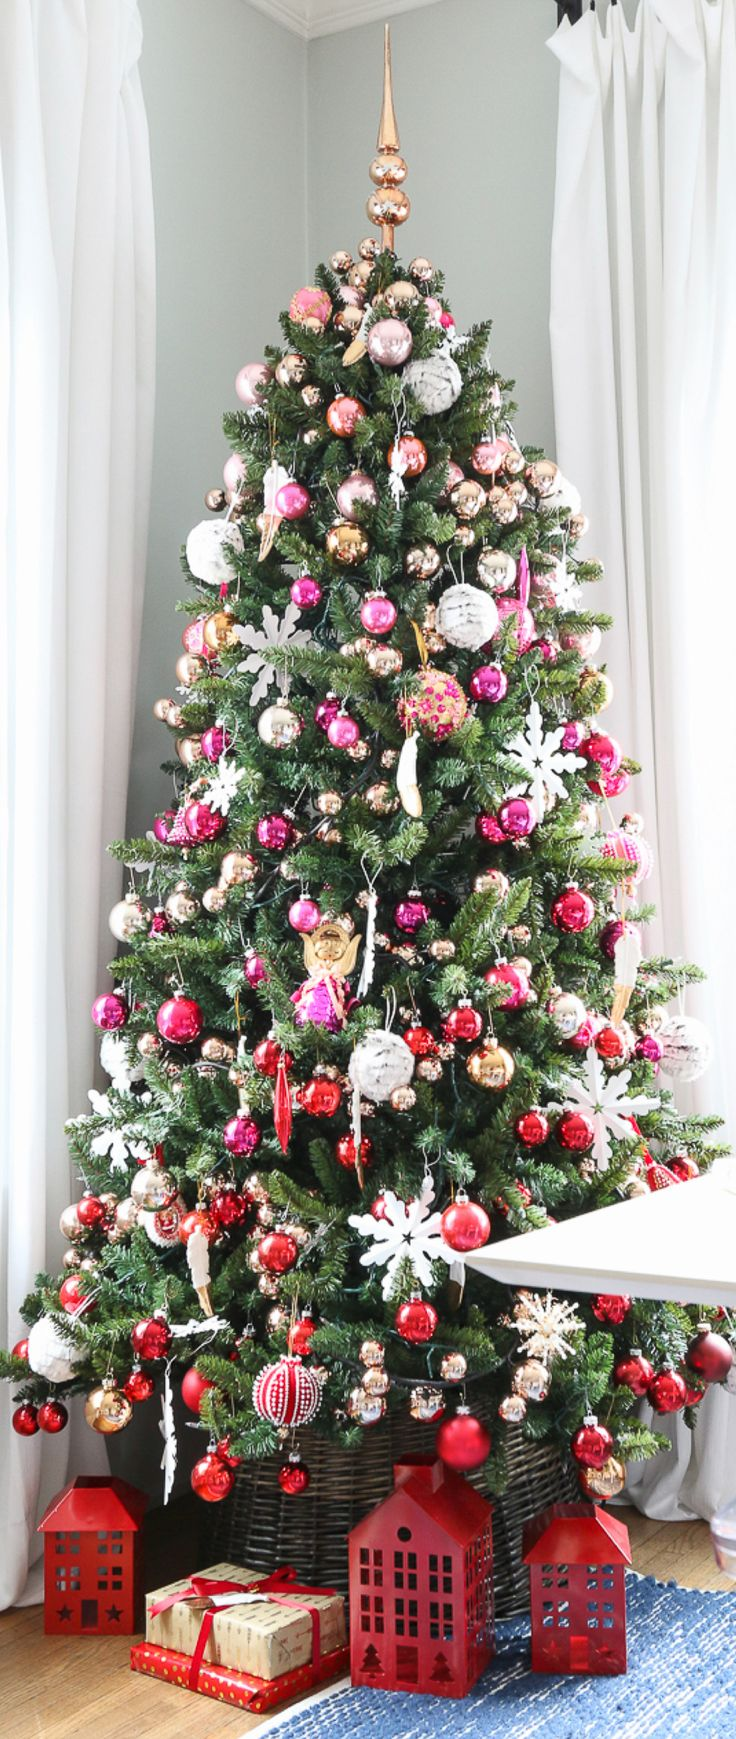 Red Pink Ombre Gradient Christmas Tree - Christmas Decor Ideas